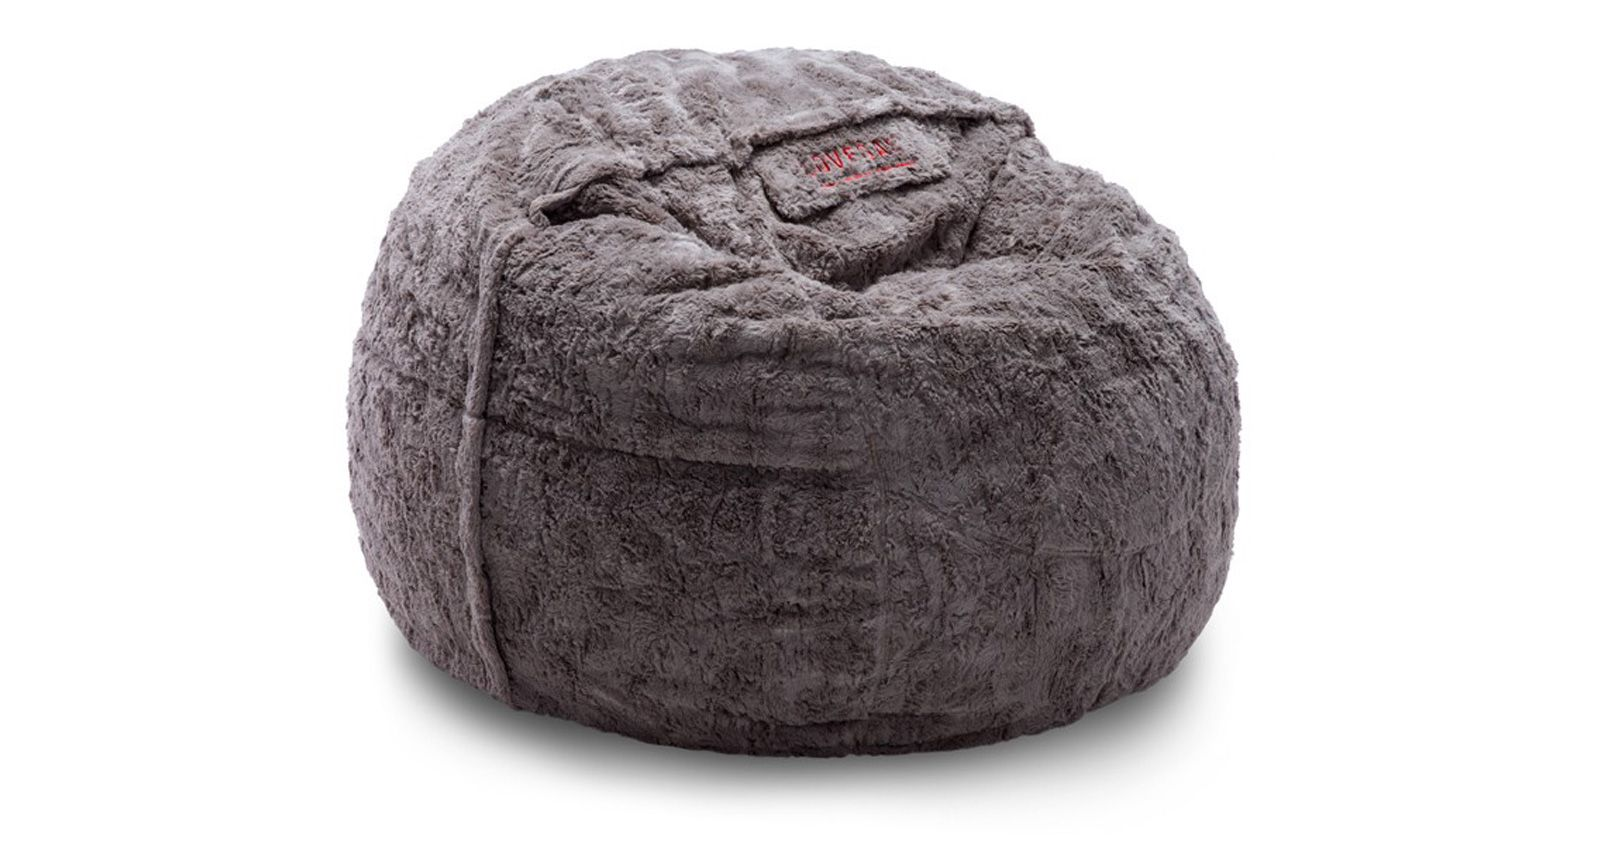 My Lovesac Is The Moviesac, Which Is Wide. Iu0027d Love A New Cover, But Not  For The Full Price.